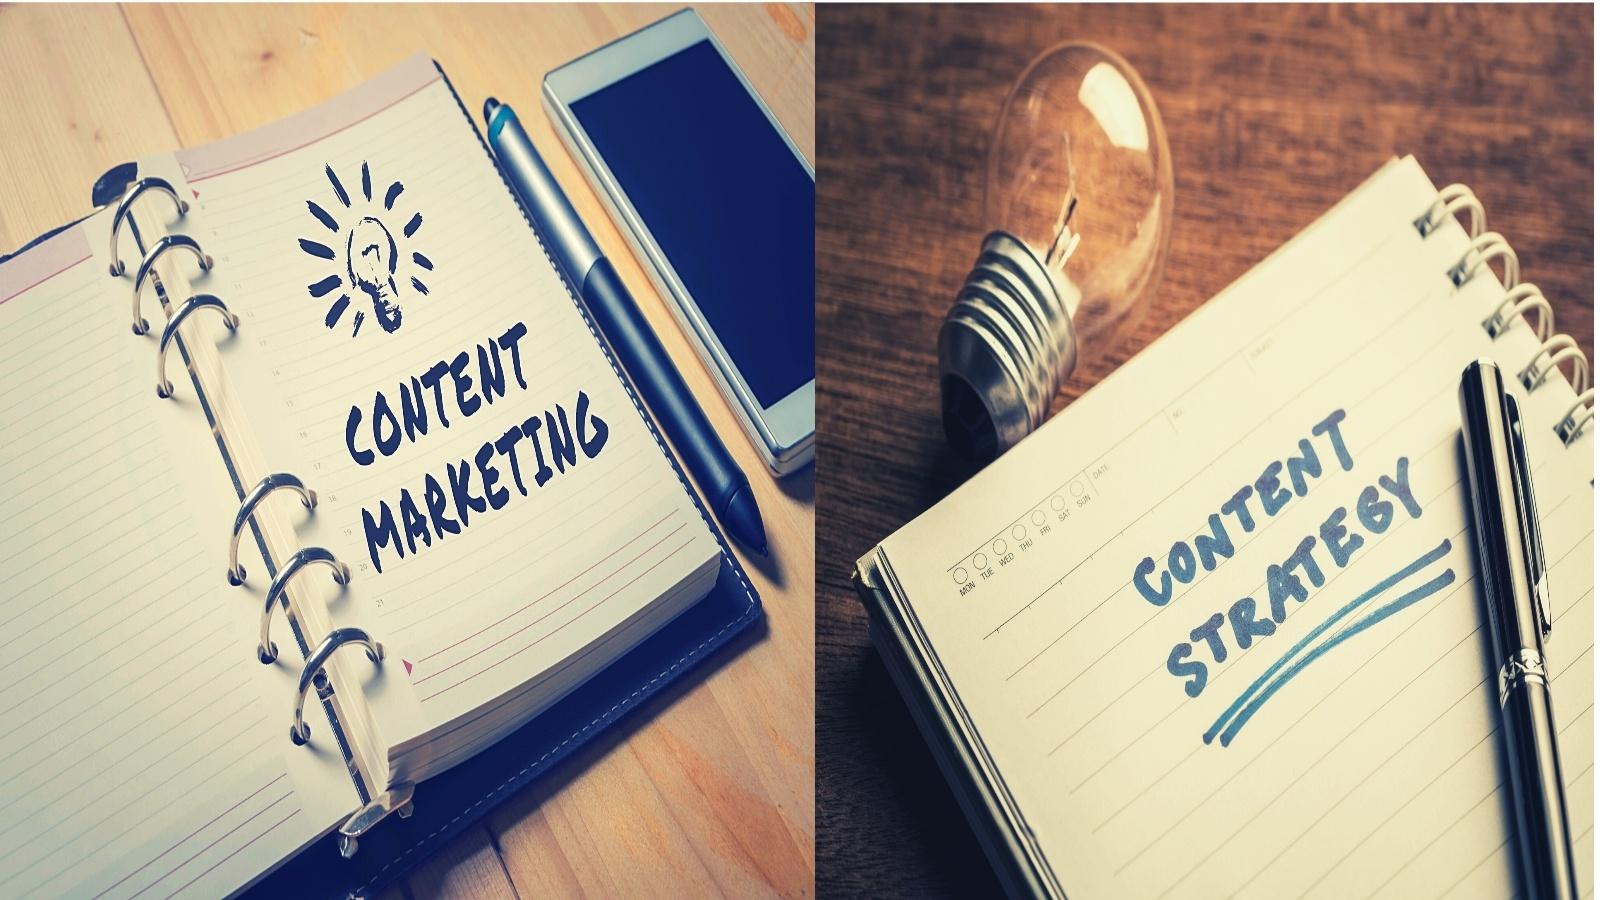 Which one should I give more importance to, content marketing or content strategy? - Quora